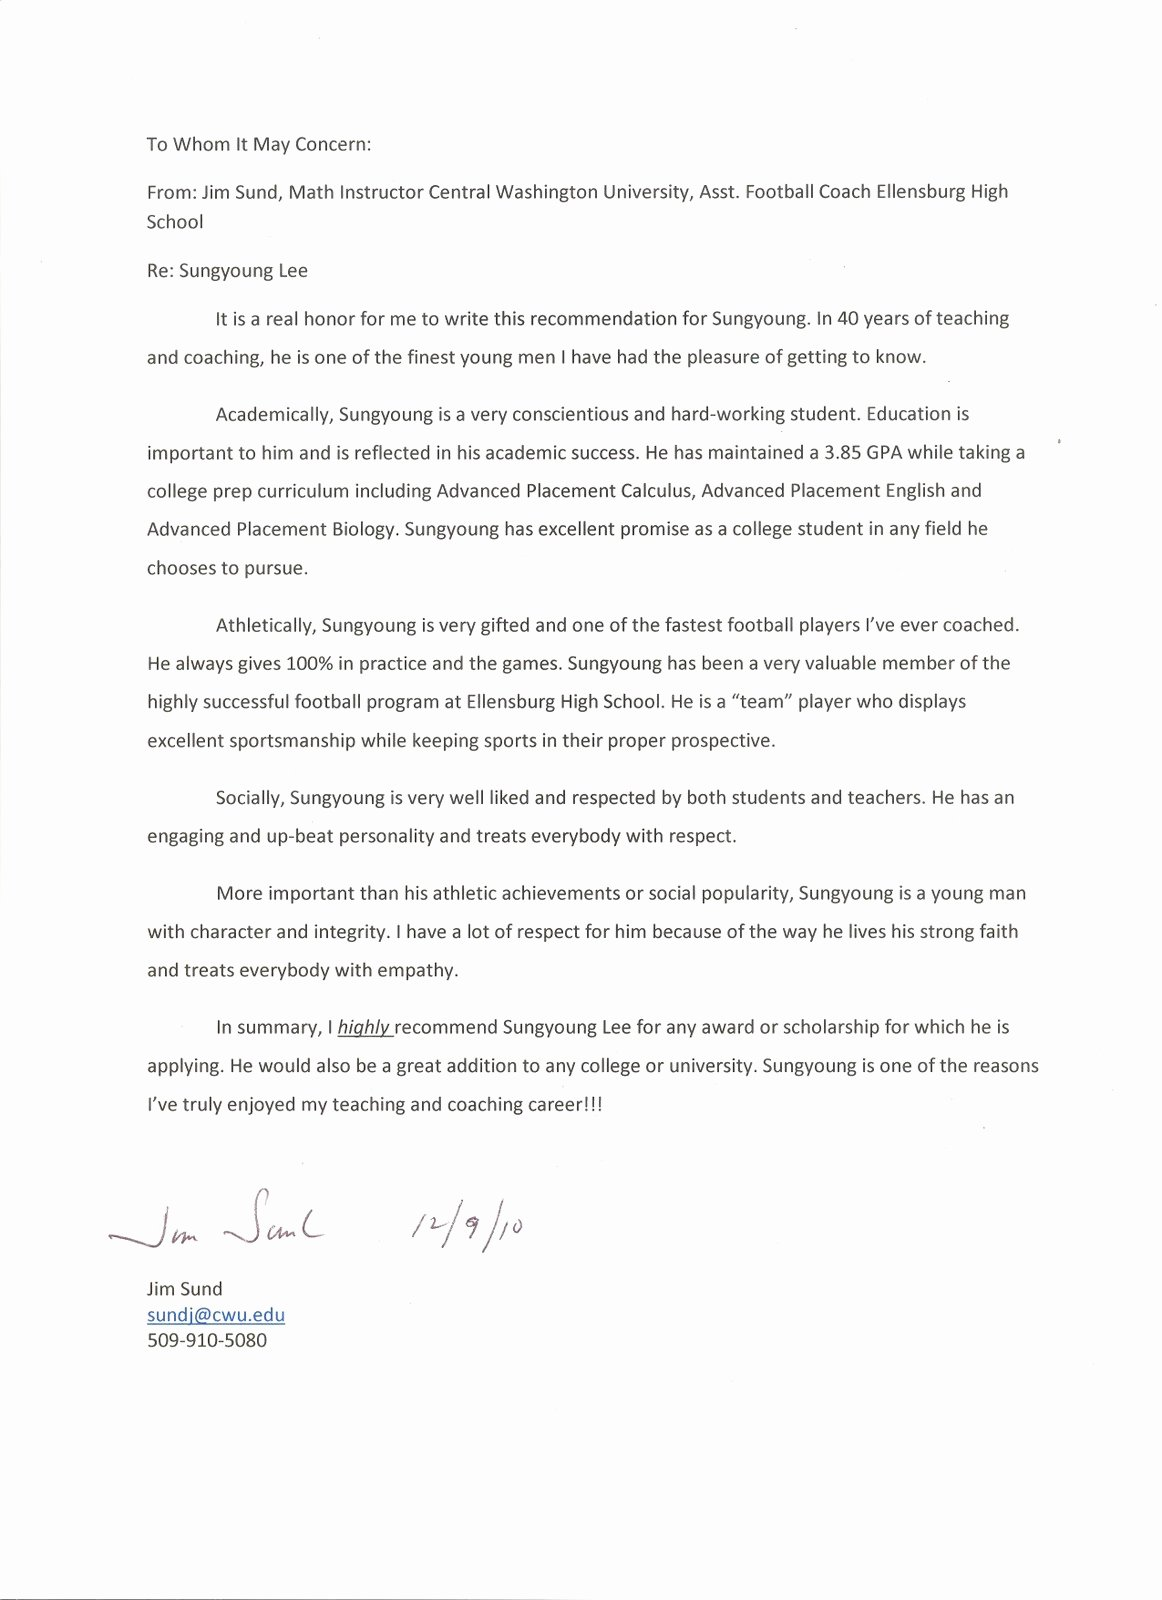 Eagle Scout Recommendation Letter Template Lovely Sungyoung Lee S Recruiting Homepage